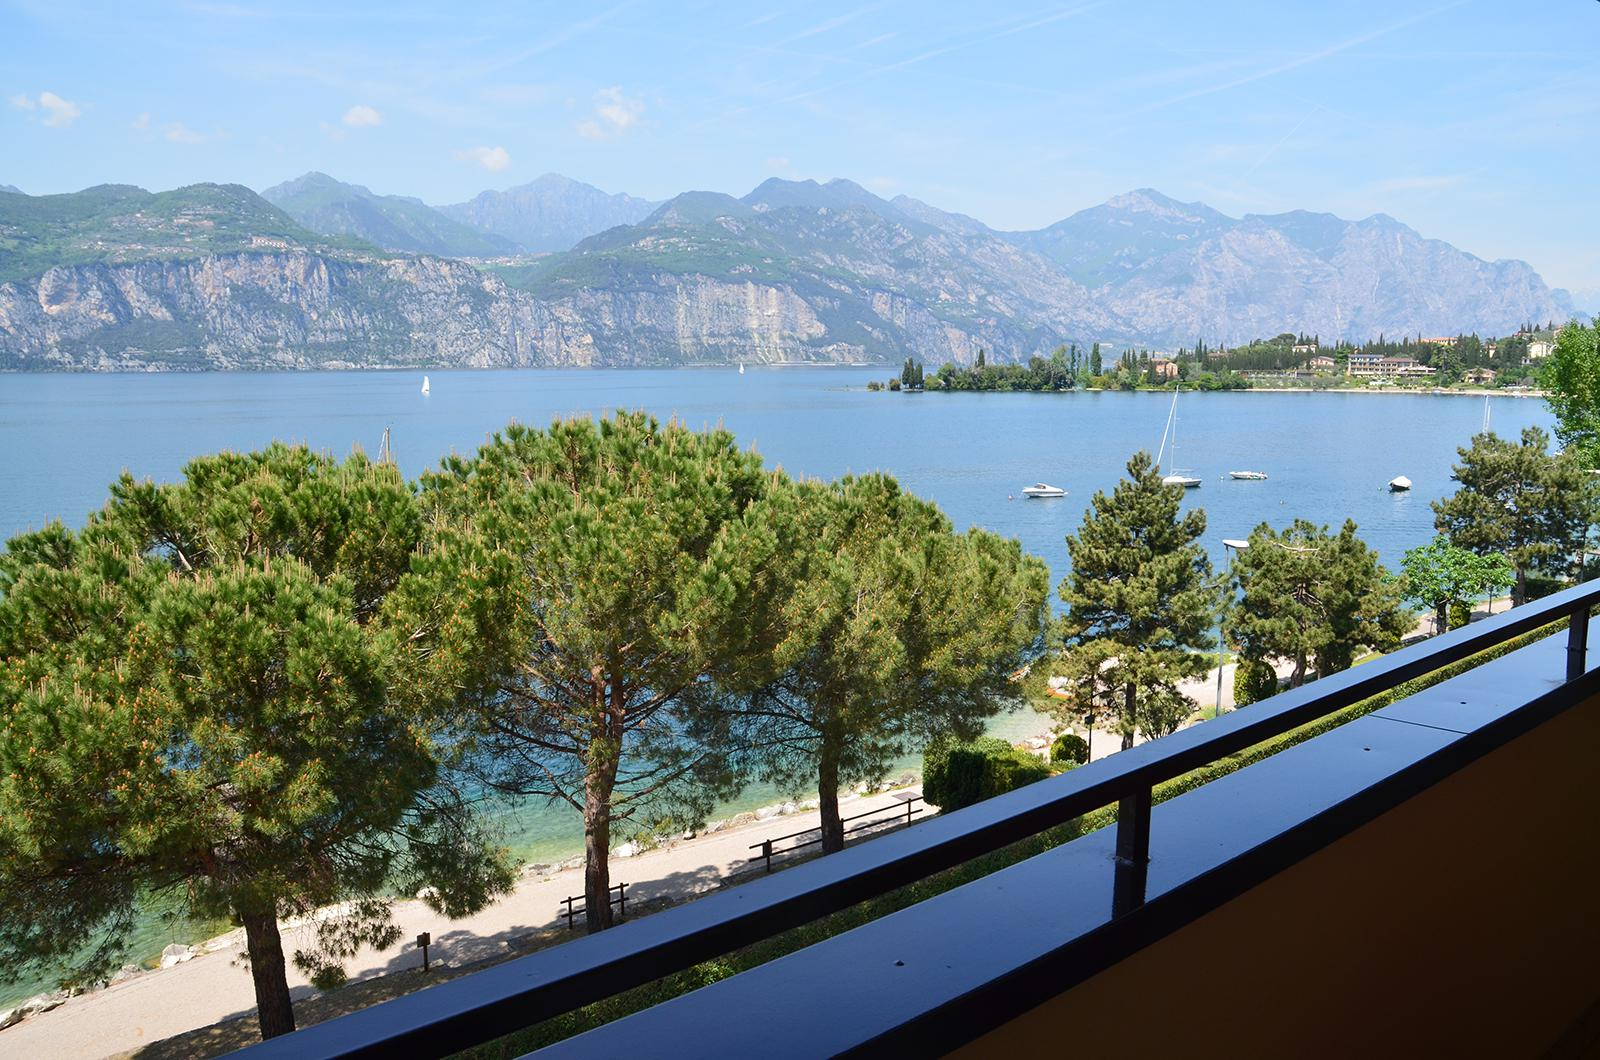 Where we are - Hotel Lido Malcesine